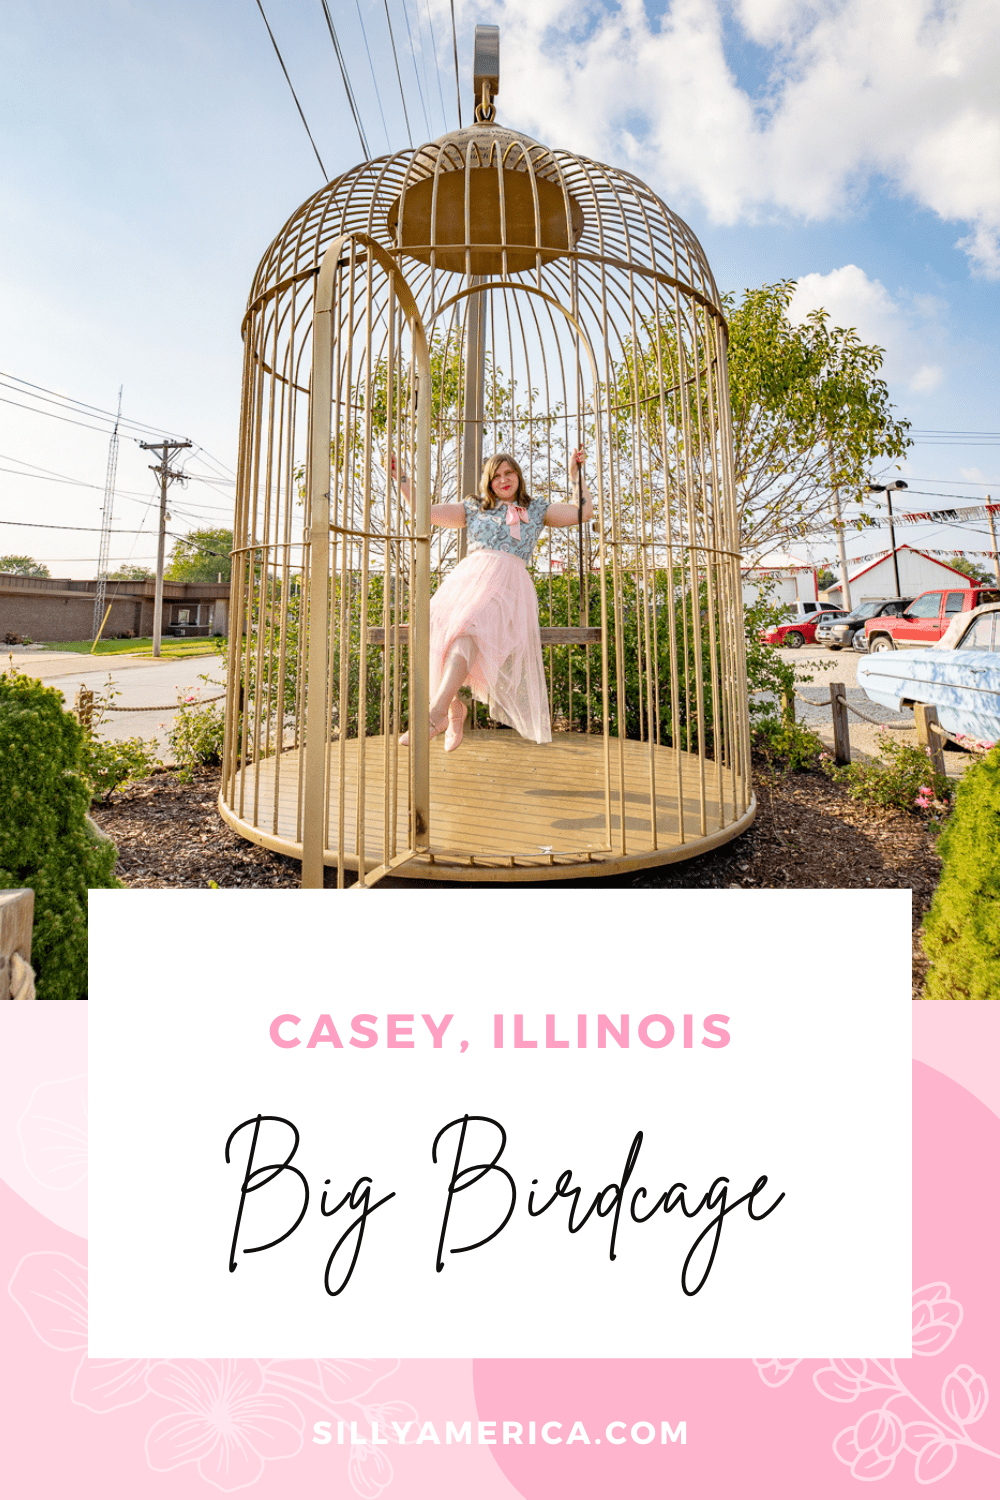 Casey, Illinois is a small town known for its big things. One of the most popular roadside attractions in Casey isn't one of the world's largest, but its big size and interactivity make it a well-beloved stop. Spread your wings and get ready to perch inside the the big birdcage in Casey, Illinois.  #IllinoisRoadsideAttractions #IllinoisRoadsideAttraction #RoadsideAttractions #RoadsideAttraction #RoadTrip #IllinoisRoadTrip #IllinoisWeekendGetaways #IllinoisWithKids #IllinoisRoadTripTravel